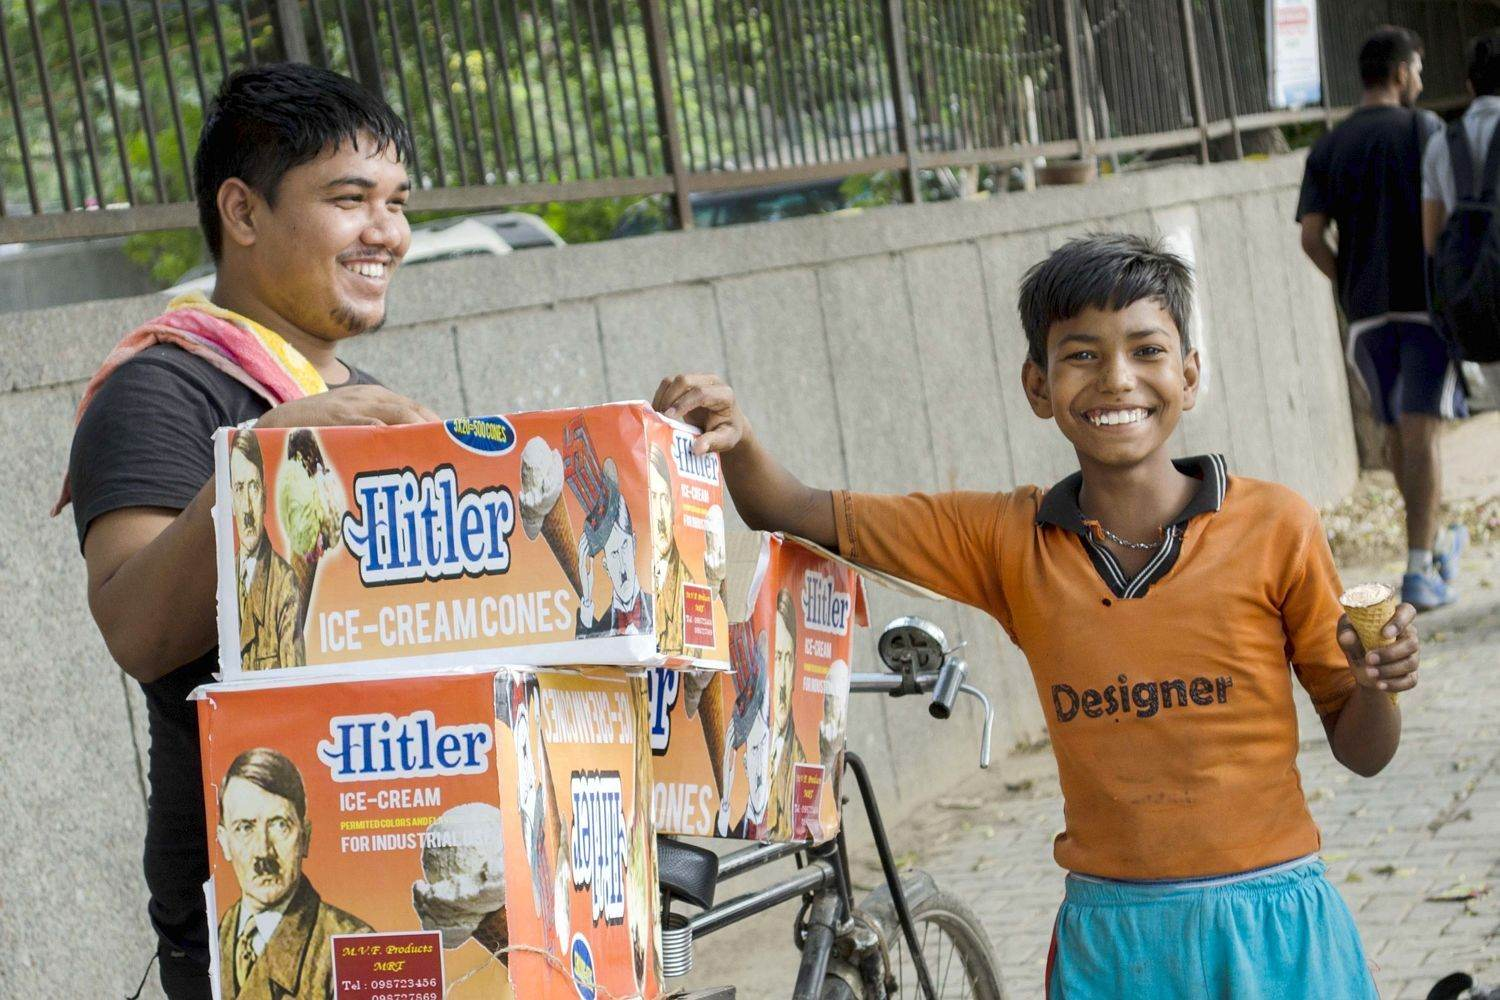 hitler ice cream, marketing fails